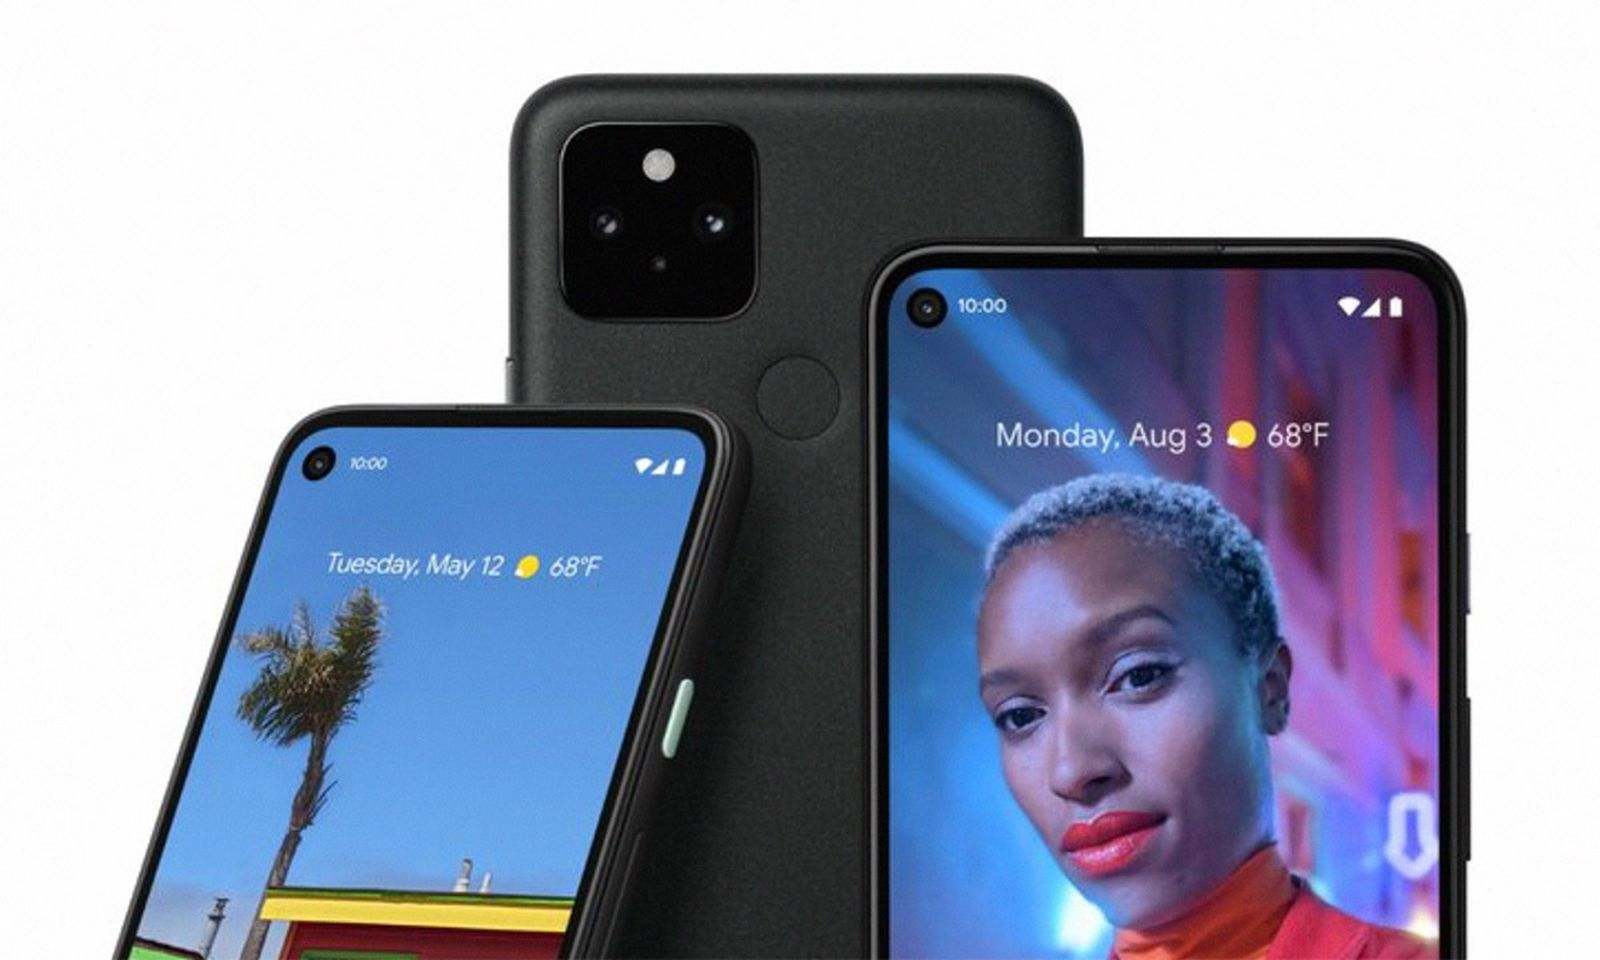 an-argument-for-the-google-pixel-5-5g-phone-feat